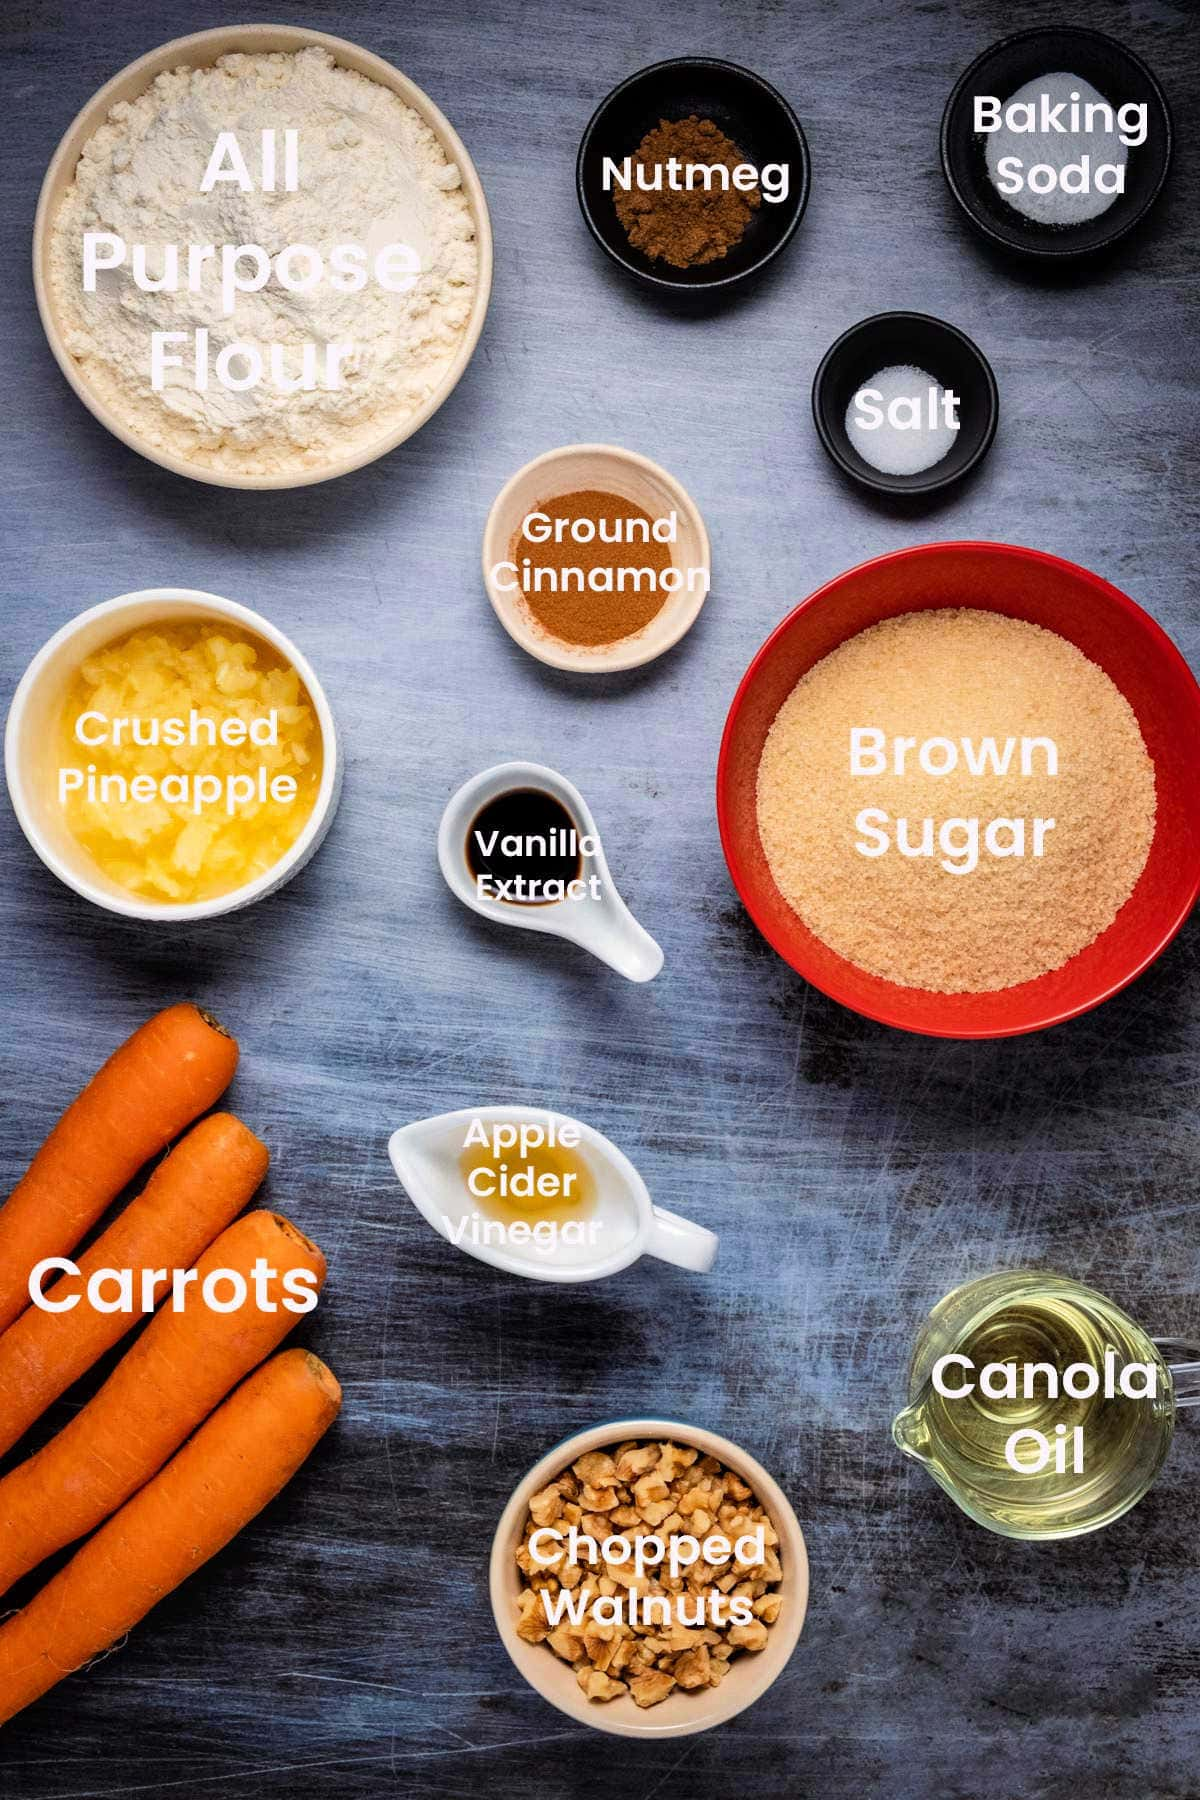 Photo of ingredients needed to make carrot cake.